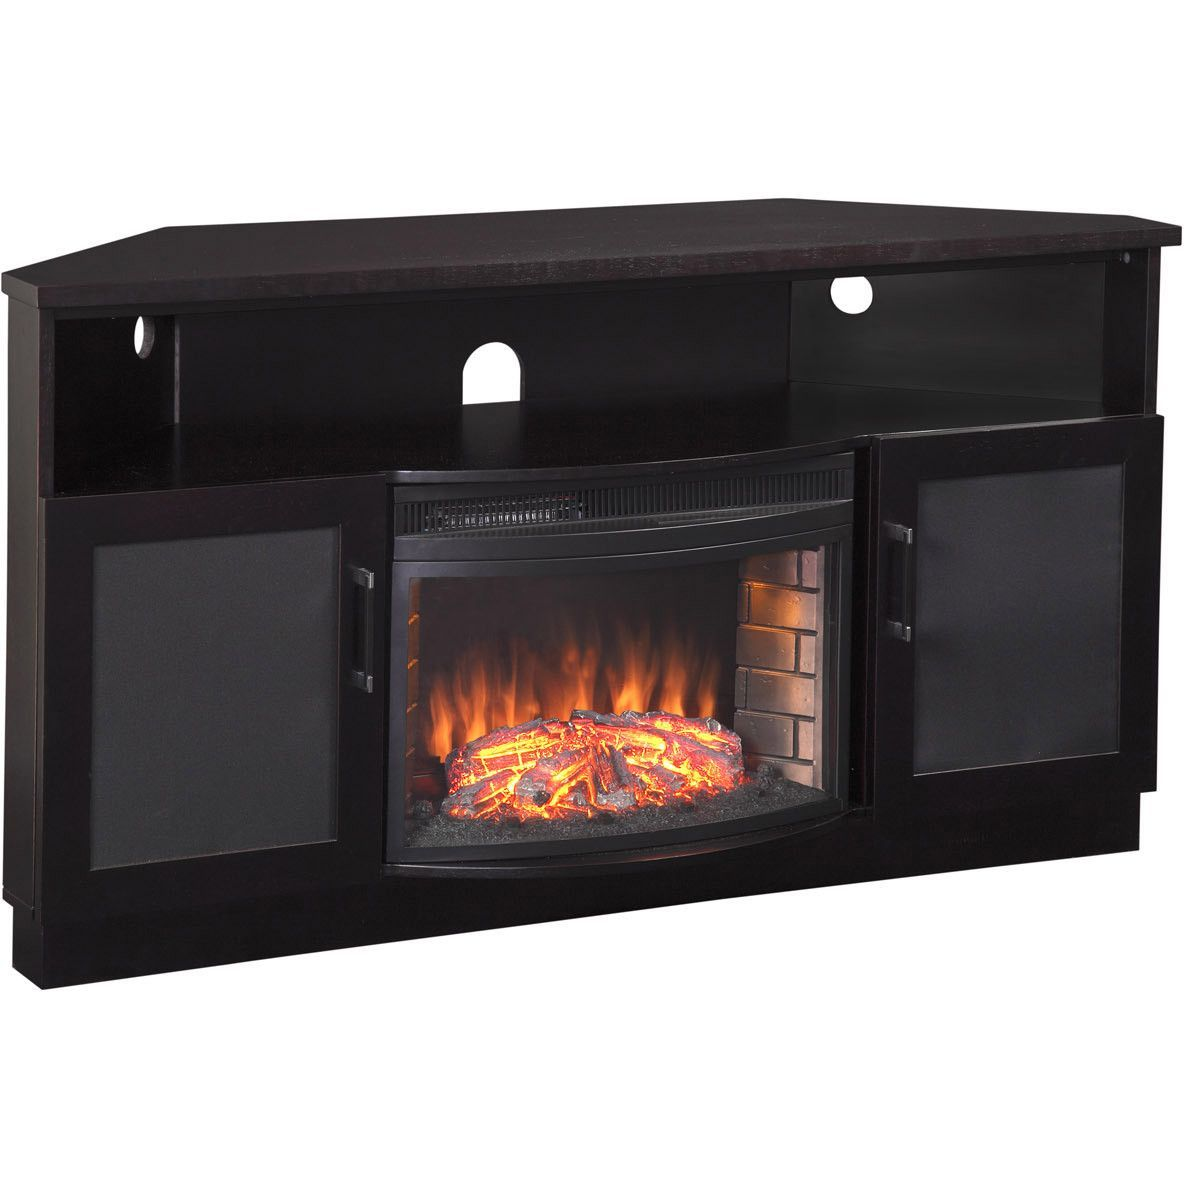 "Corner Electric Fireplaces Home Depot Furnitech Corner Tv Stand Electric Fireplace For 65"" Tv"